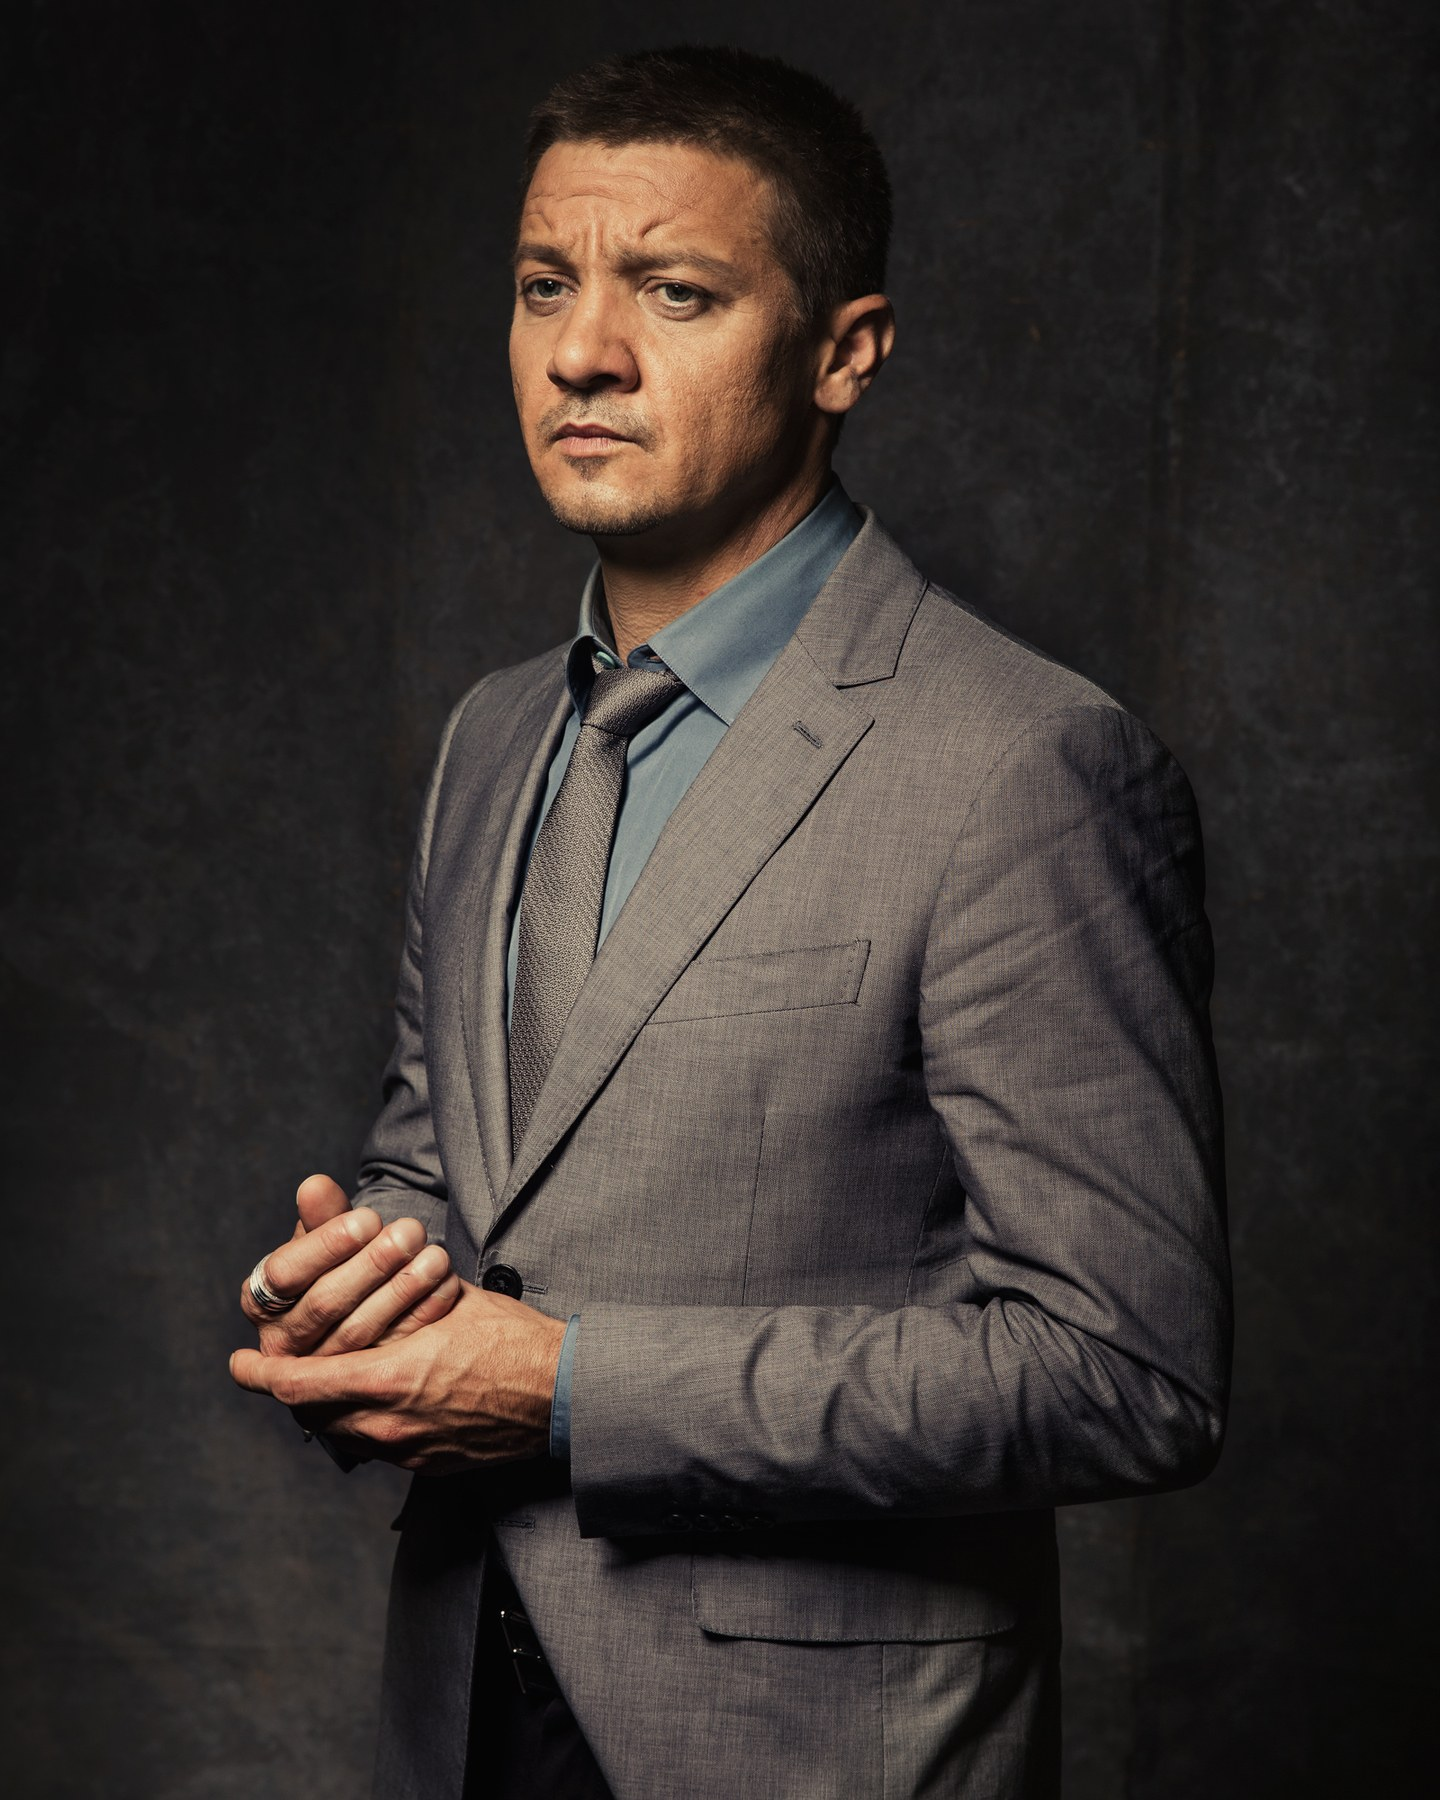 toronto-international-film-festival-2016-jeremy-renner.jpg